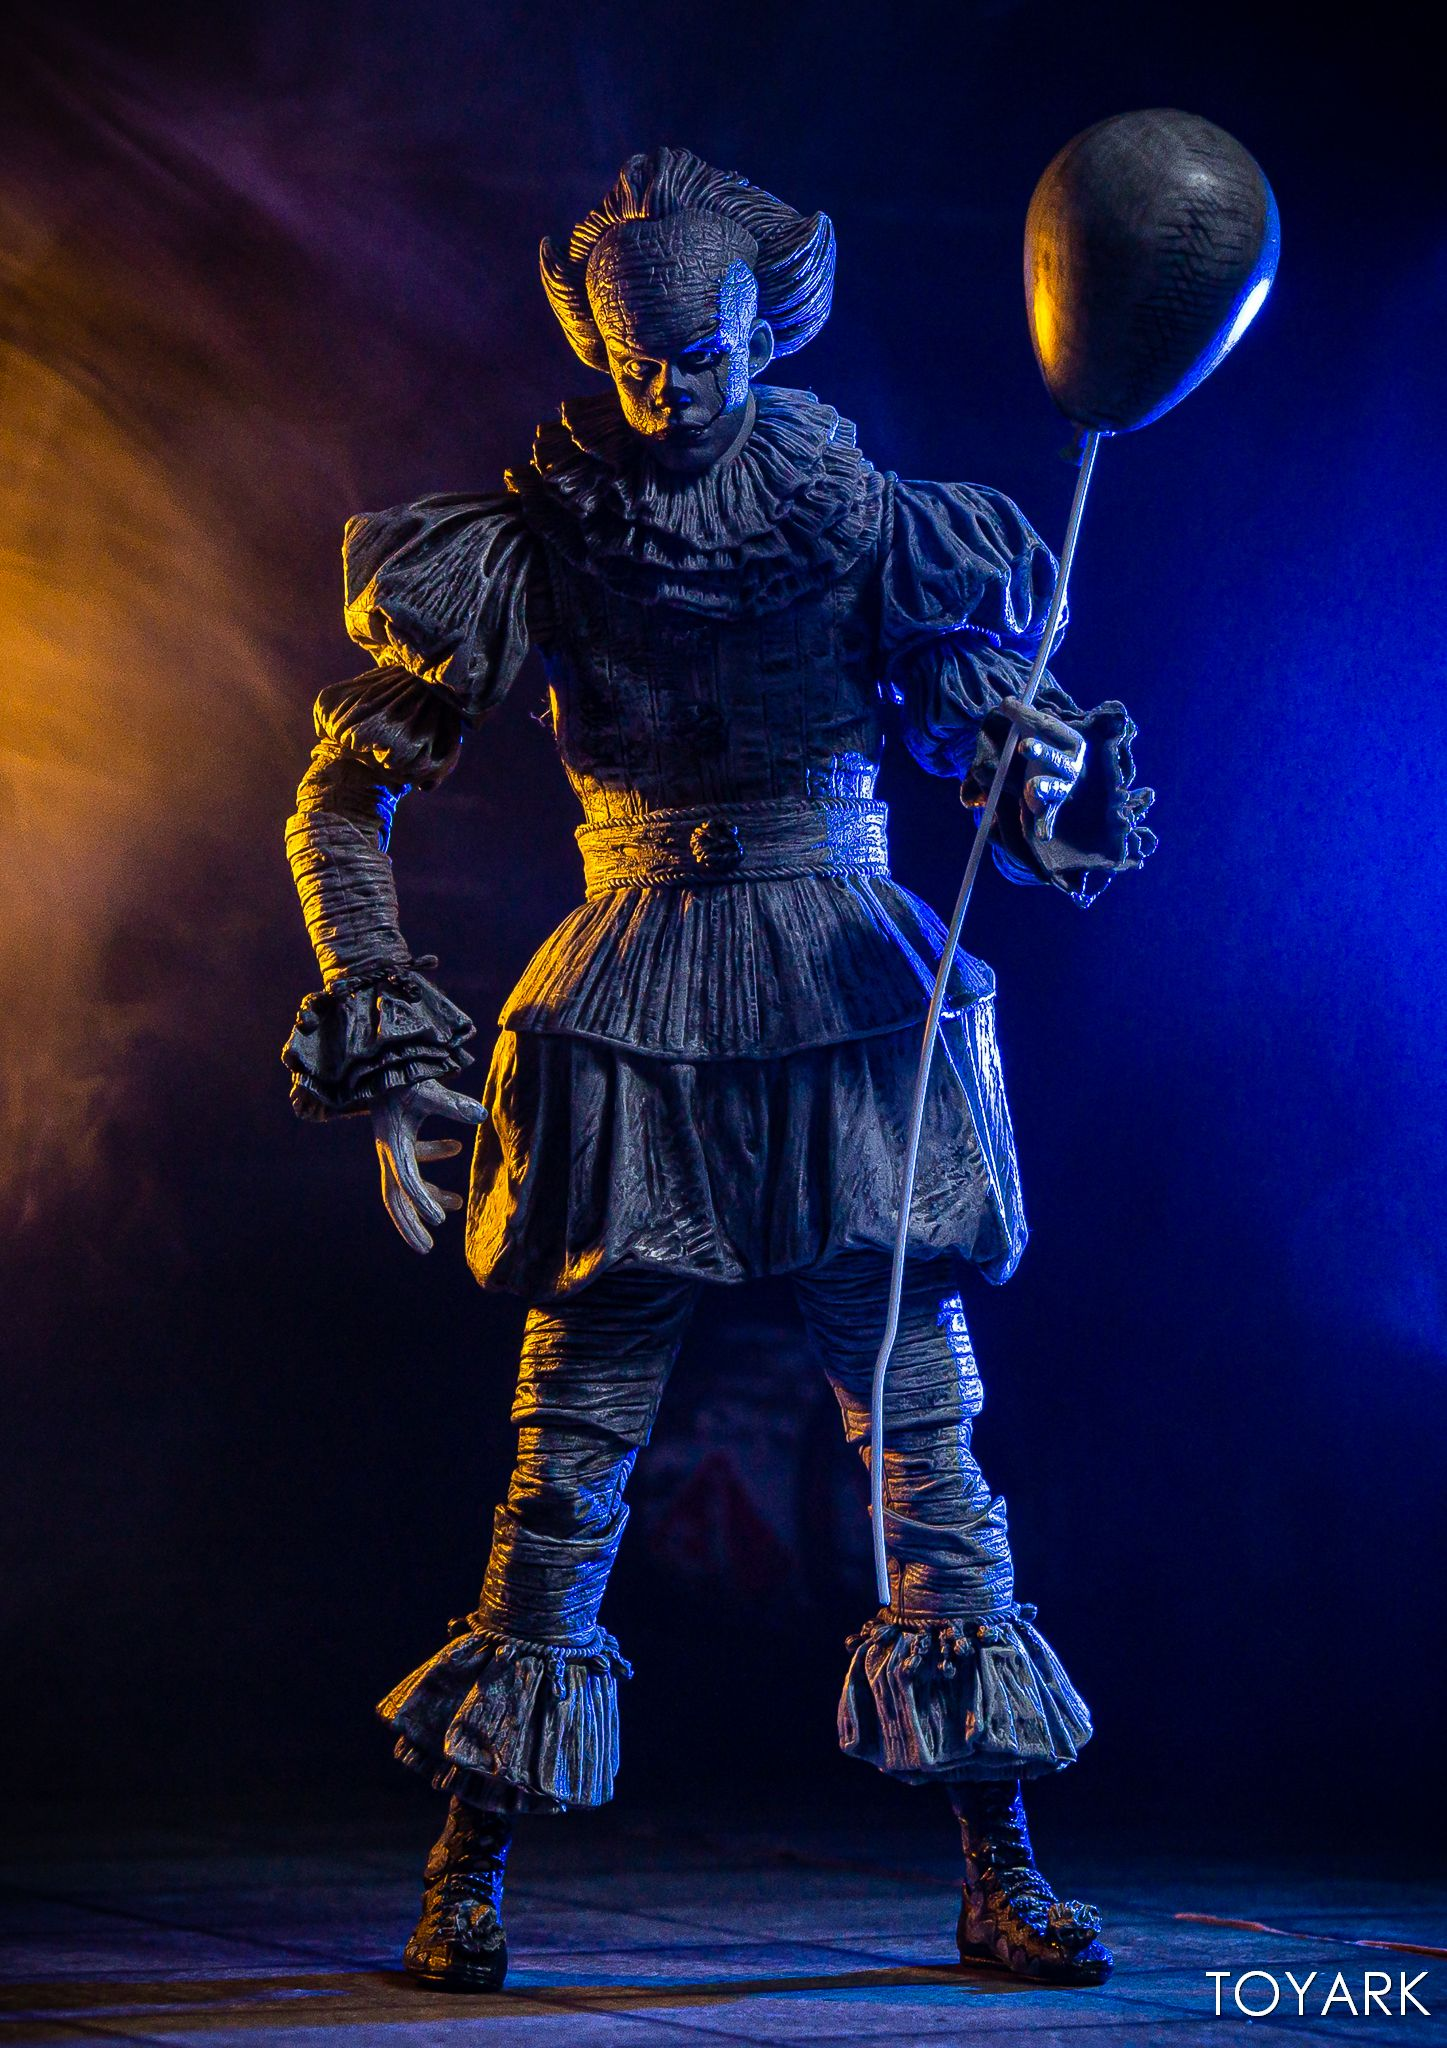 https://news.toyark.com/wp-content/uploads/sites/4/2019/07/SDCC-2019-Etched-Pennywise-NECA-021.jpg